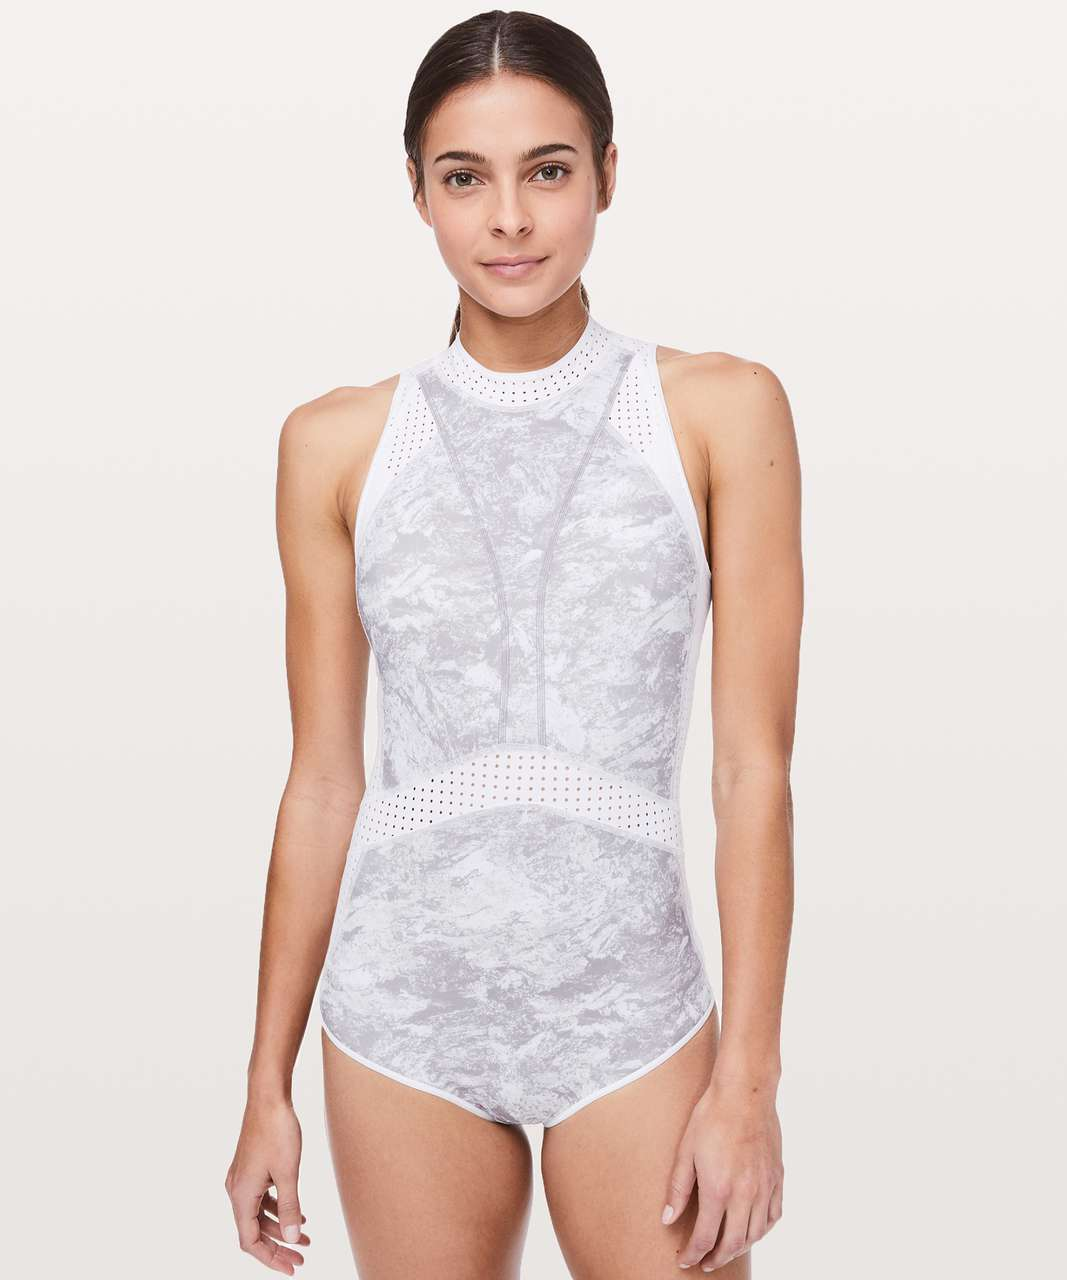 Lululemon Beach Break Paddlesuit - Washed Marble Alpine White Silverscreen / White